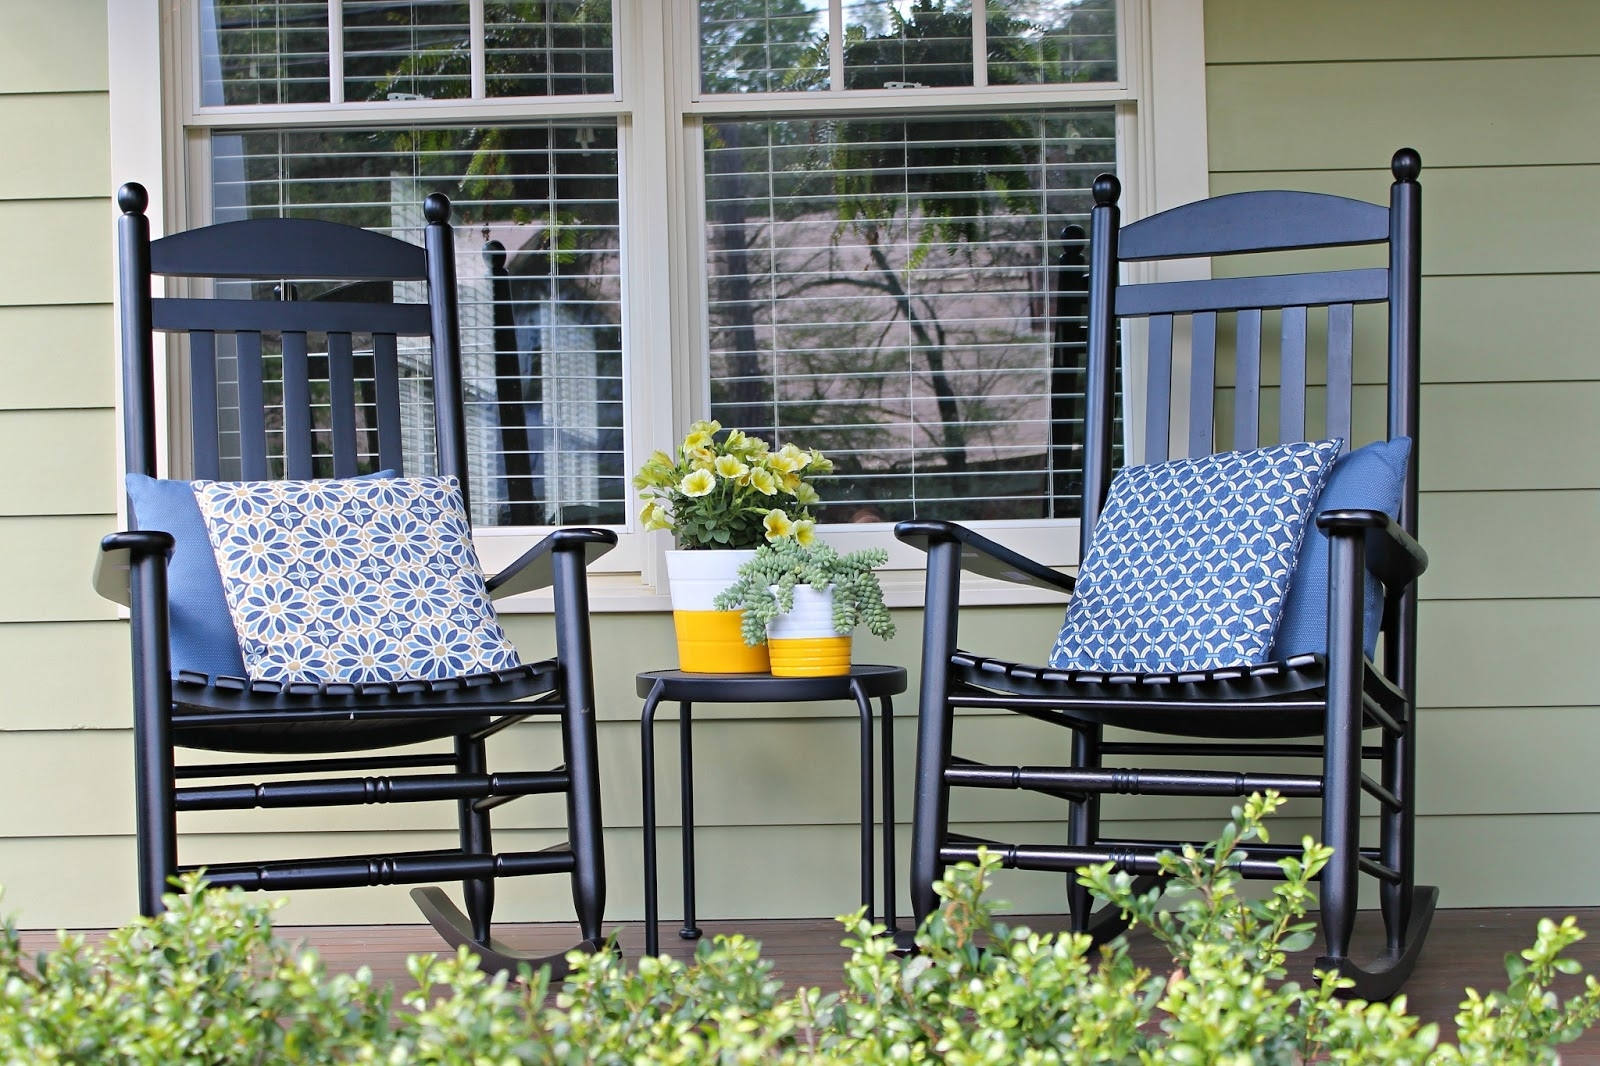 Popular The Iconic Style Of The Rocking Chair Pertaining To Rocking Chairs For Front Porch (View 3 of 20)